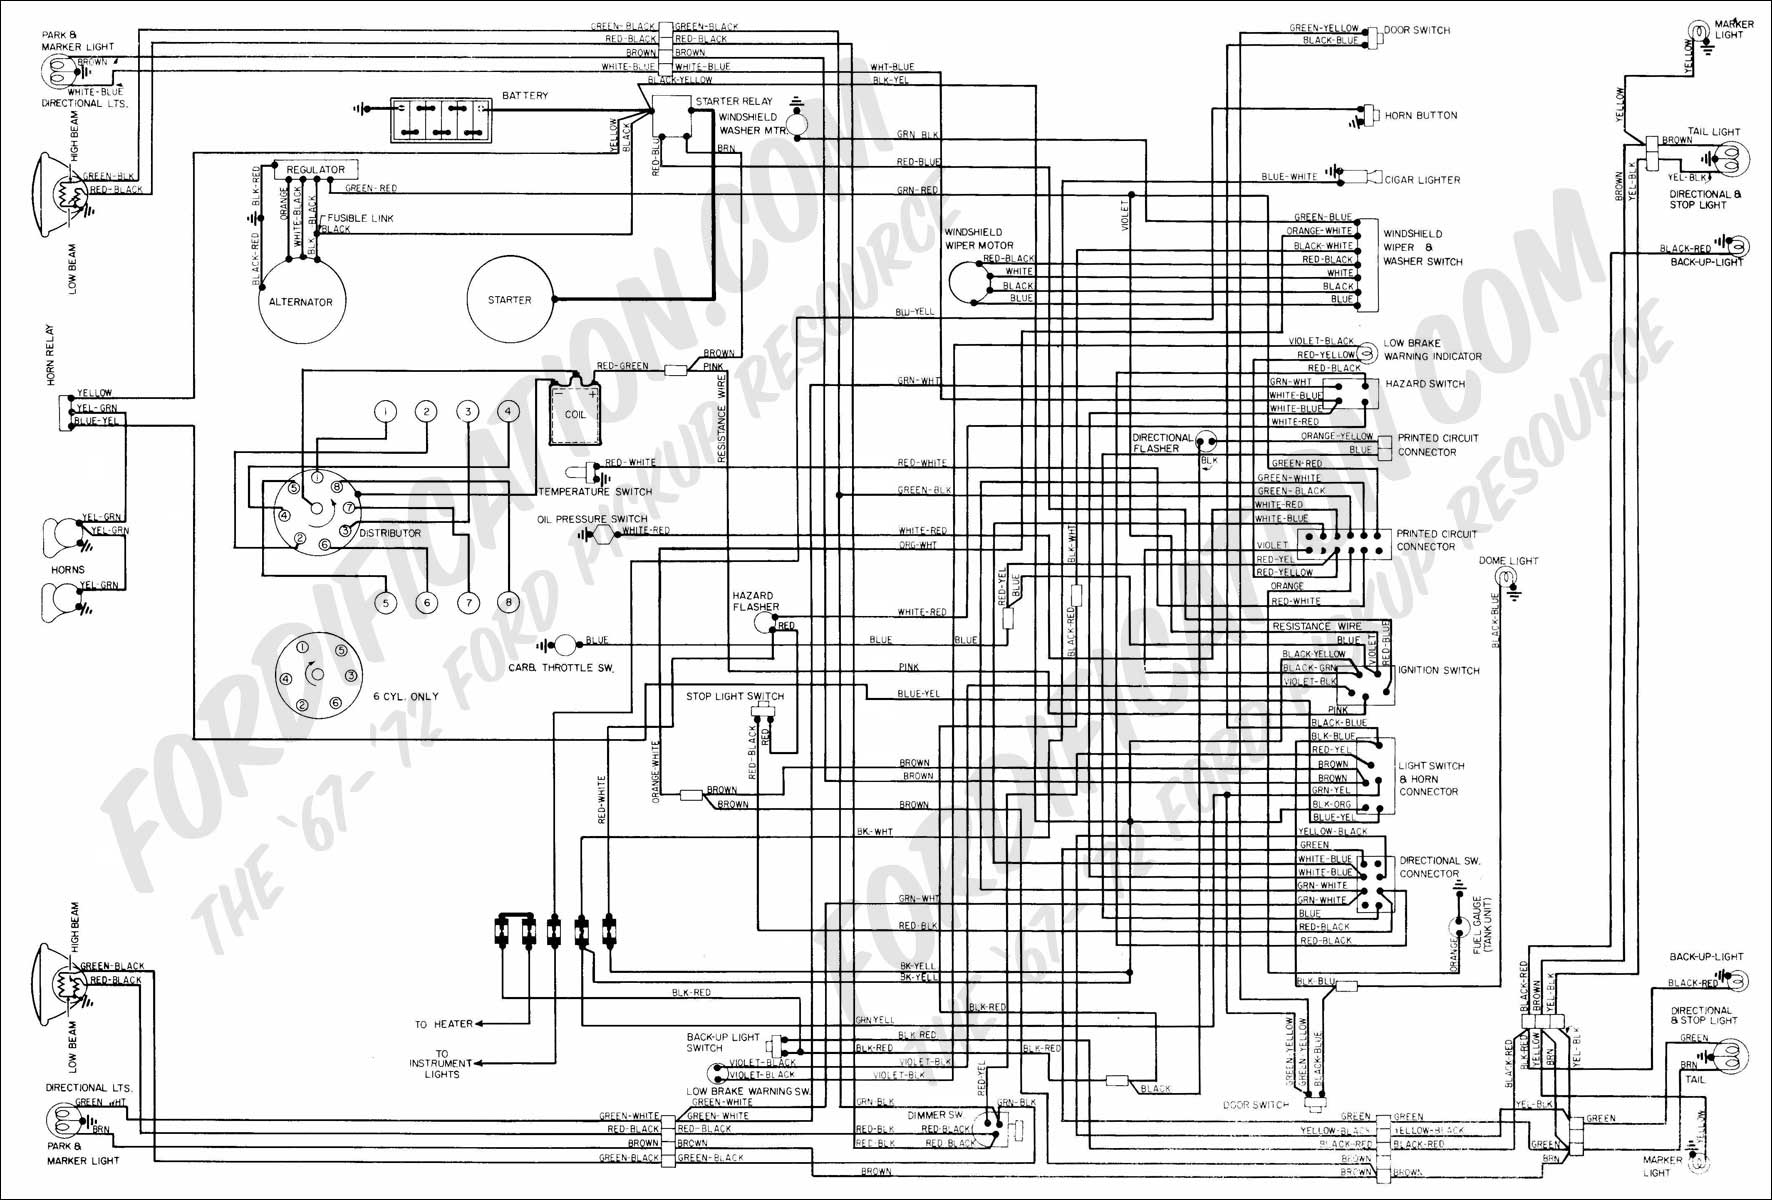 system ford 2000 tractor wiring diagram pdf with 1216917 Light Switch Dome Light Control on Honda Cb750 Sohc Engine Diagram further 1992 Ford F350 Electrical Wiring Diagram together with Toro 11 Lawn Mower Parts Diagram in addition 1216917 Light Switch Dome Light Control furthermore T1836455 Wiring diagram simplicity lawn tractor.